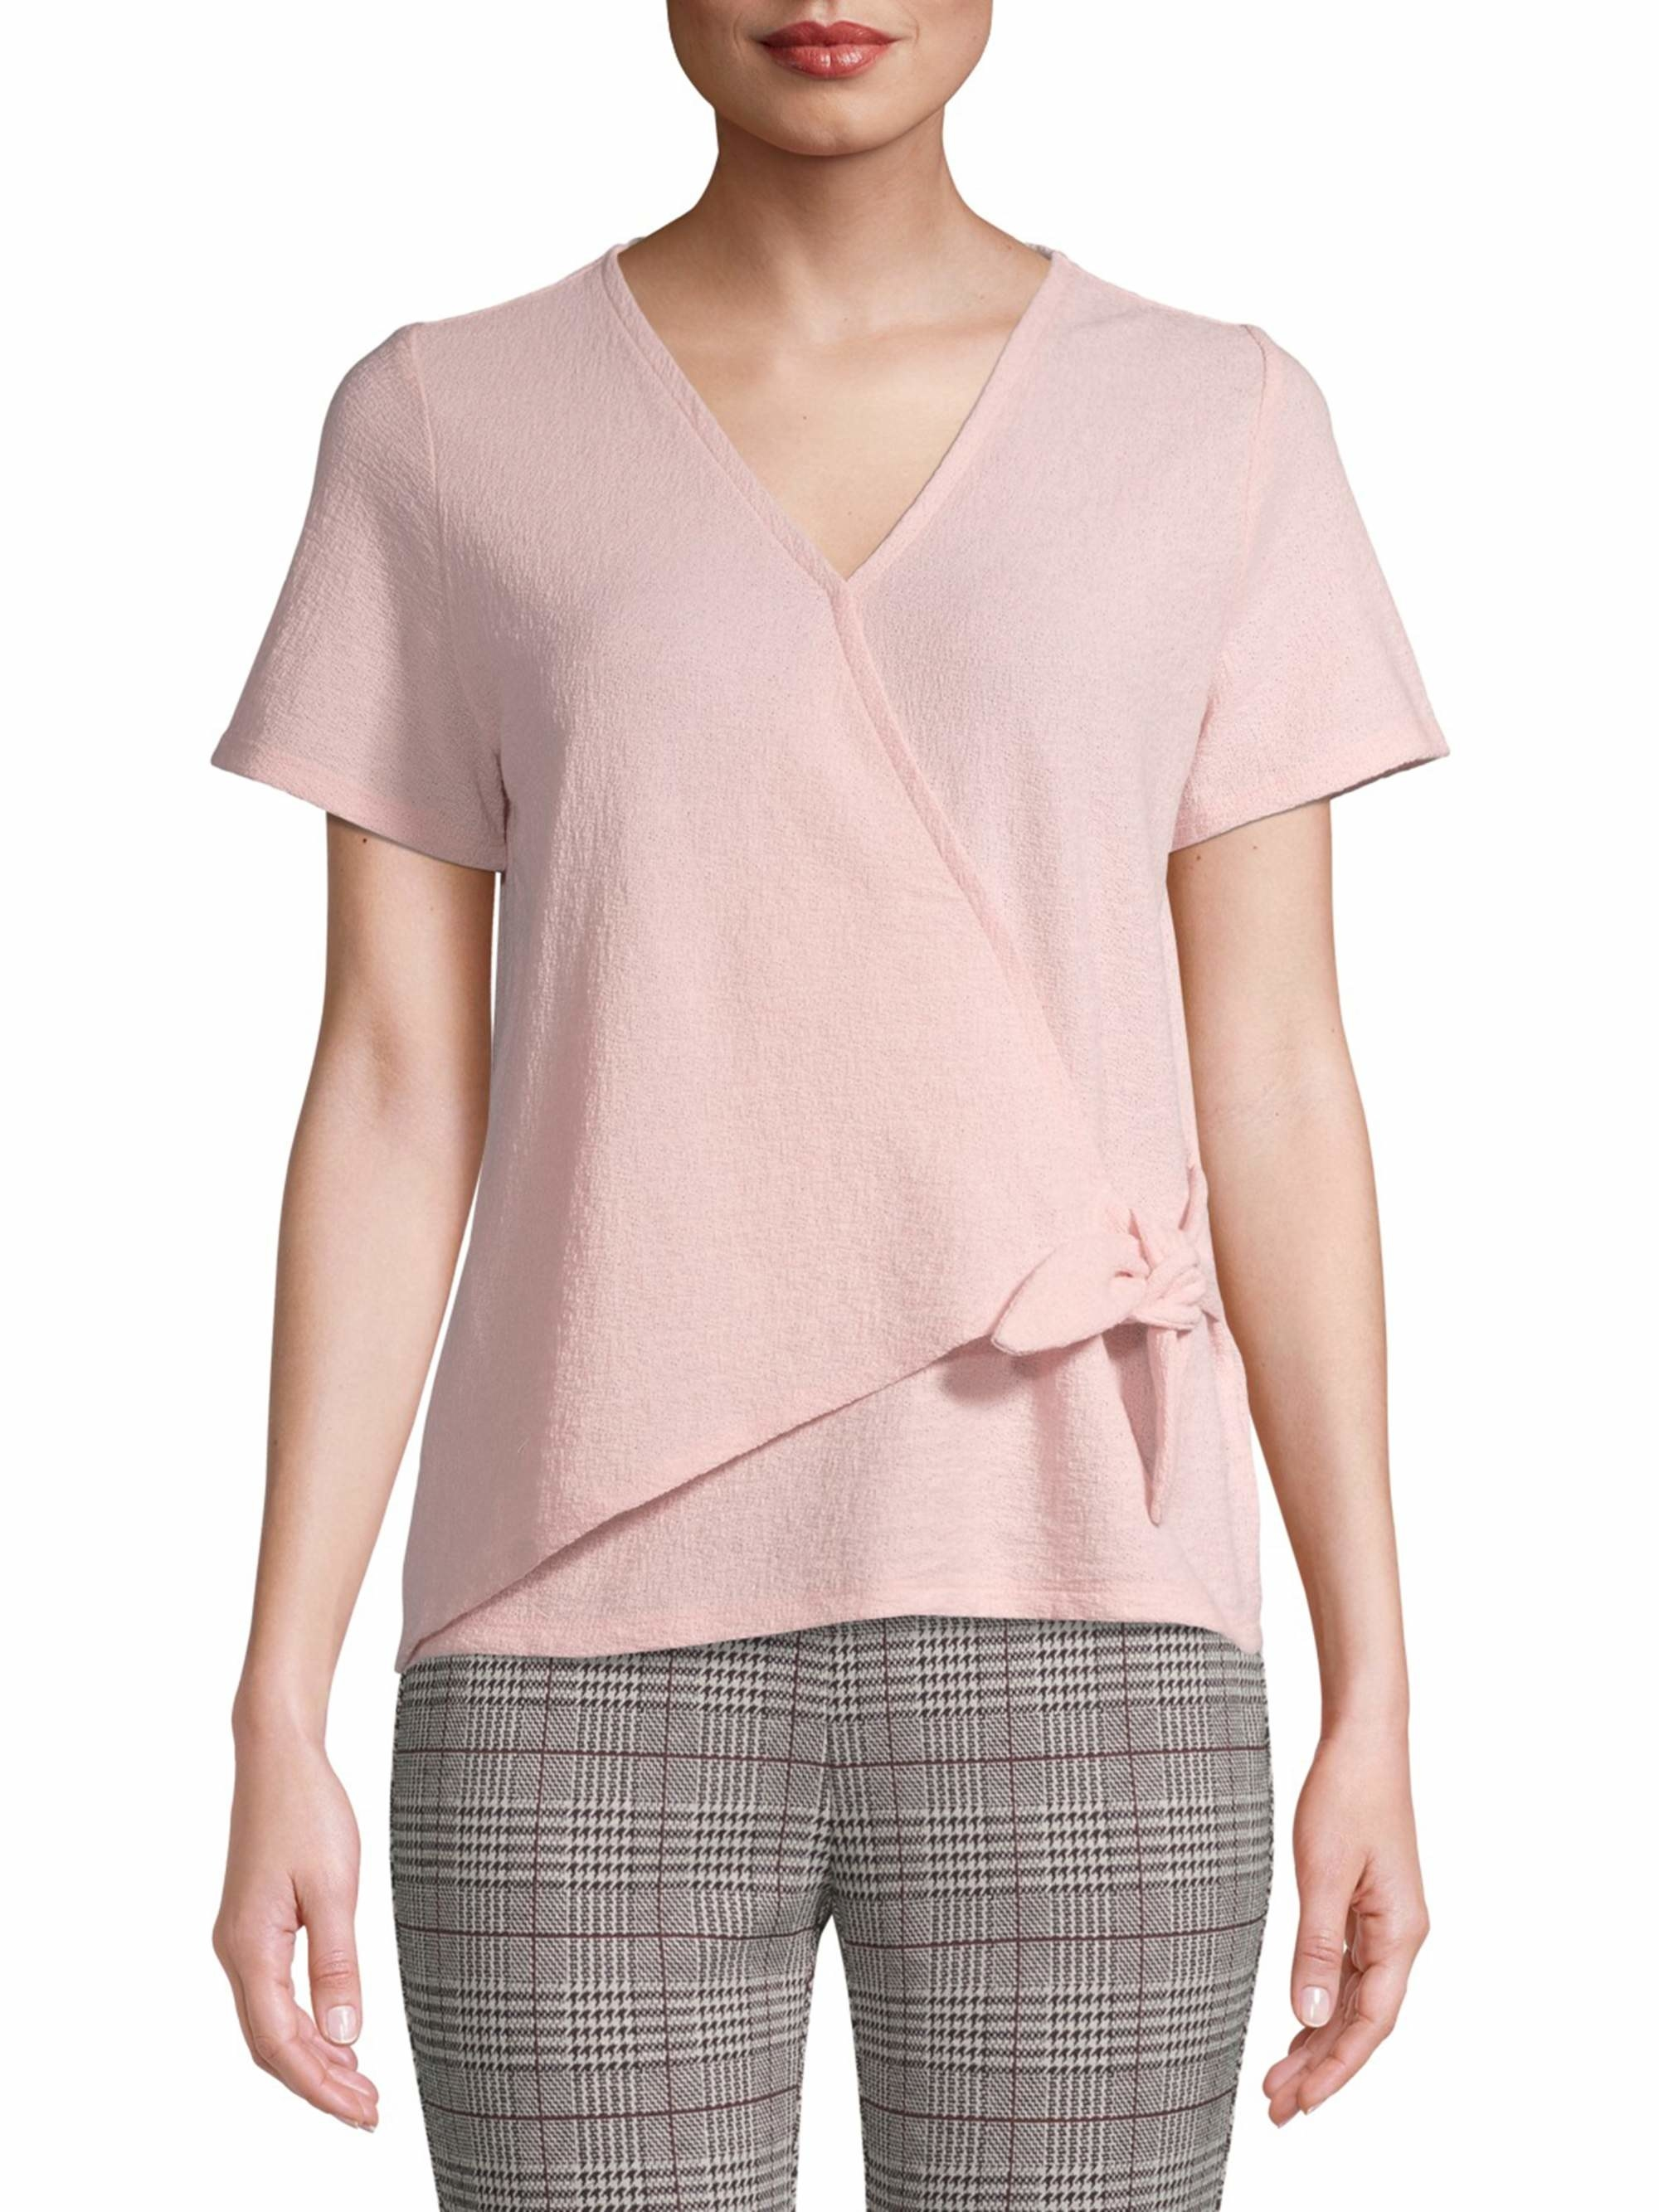 The front tie pink top